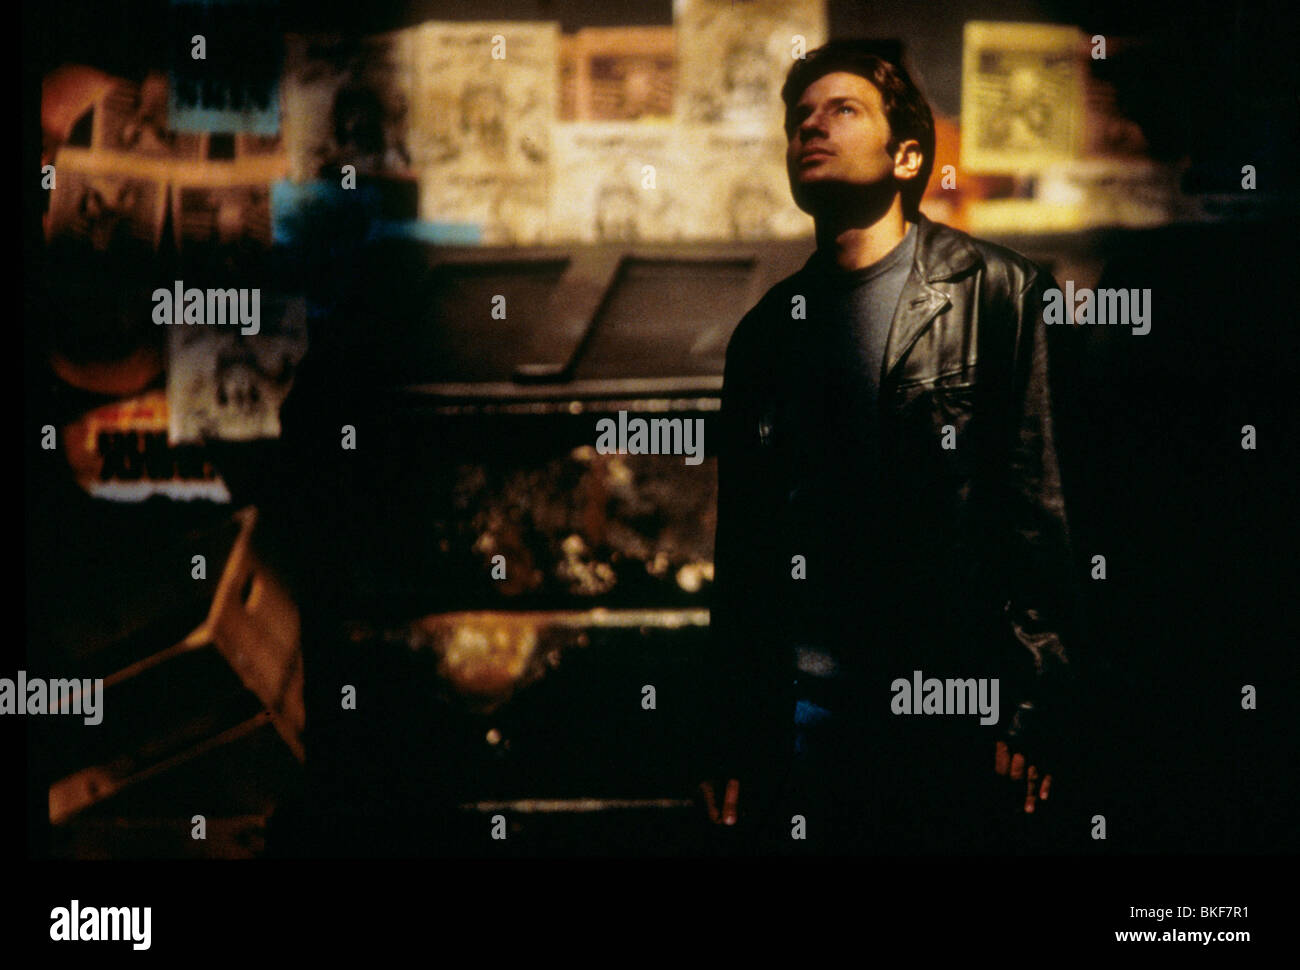 X-FILES: THE MOVIE (1998) DAVID DUCHOVNY XFM 115 - Stock Image